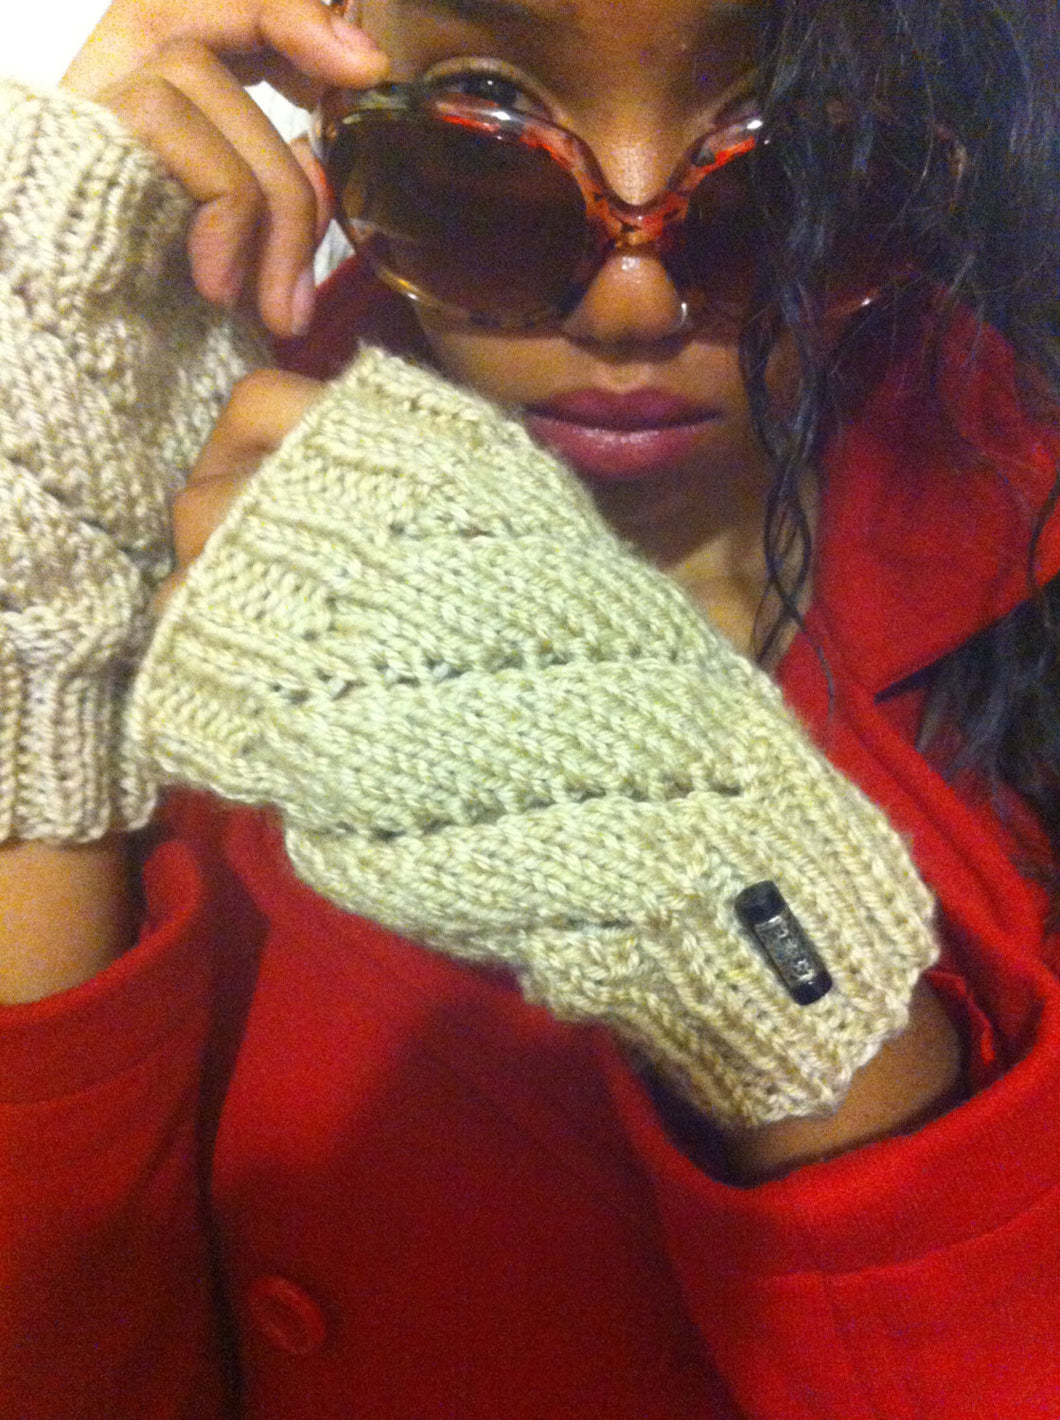 Fingerless Mitts – Lace Eyelets with Accented Cuffs